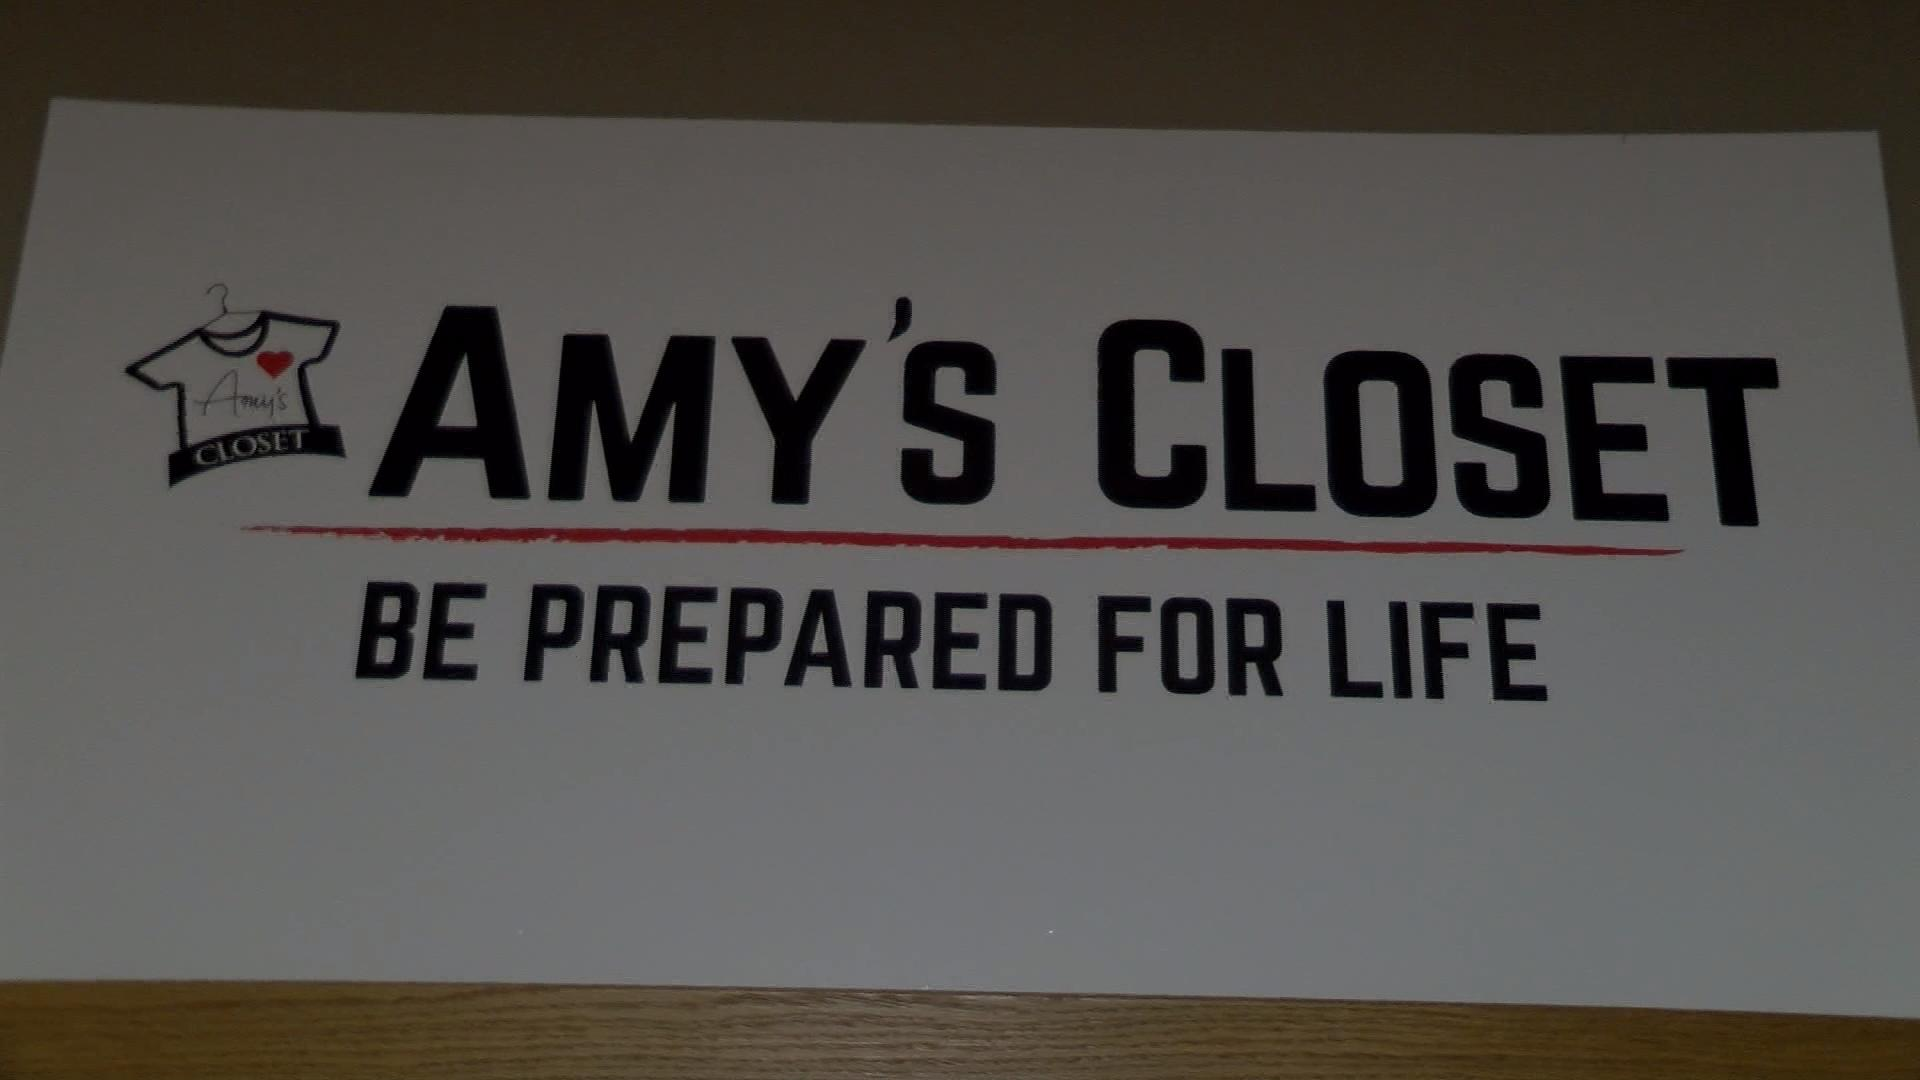 Providing help for those in need at Amy's Closet